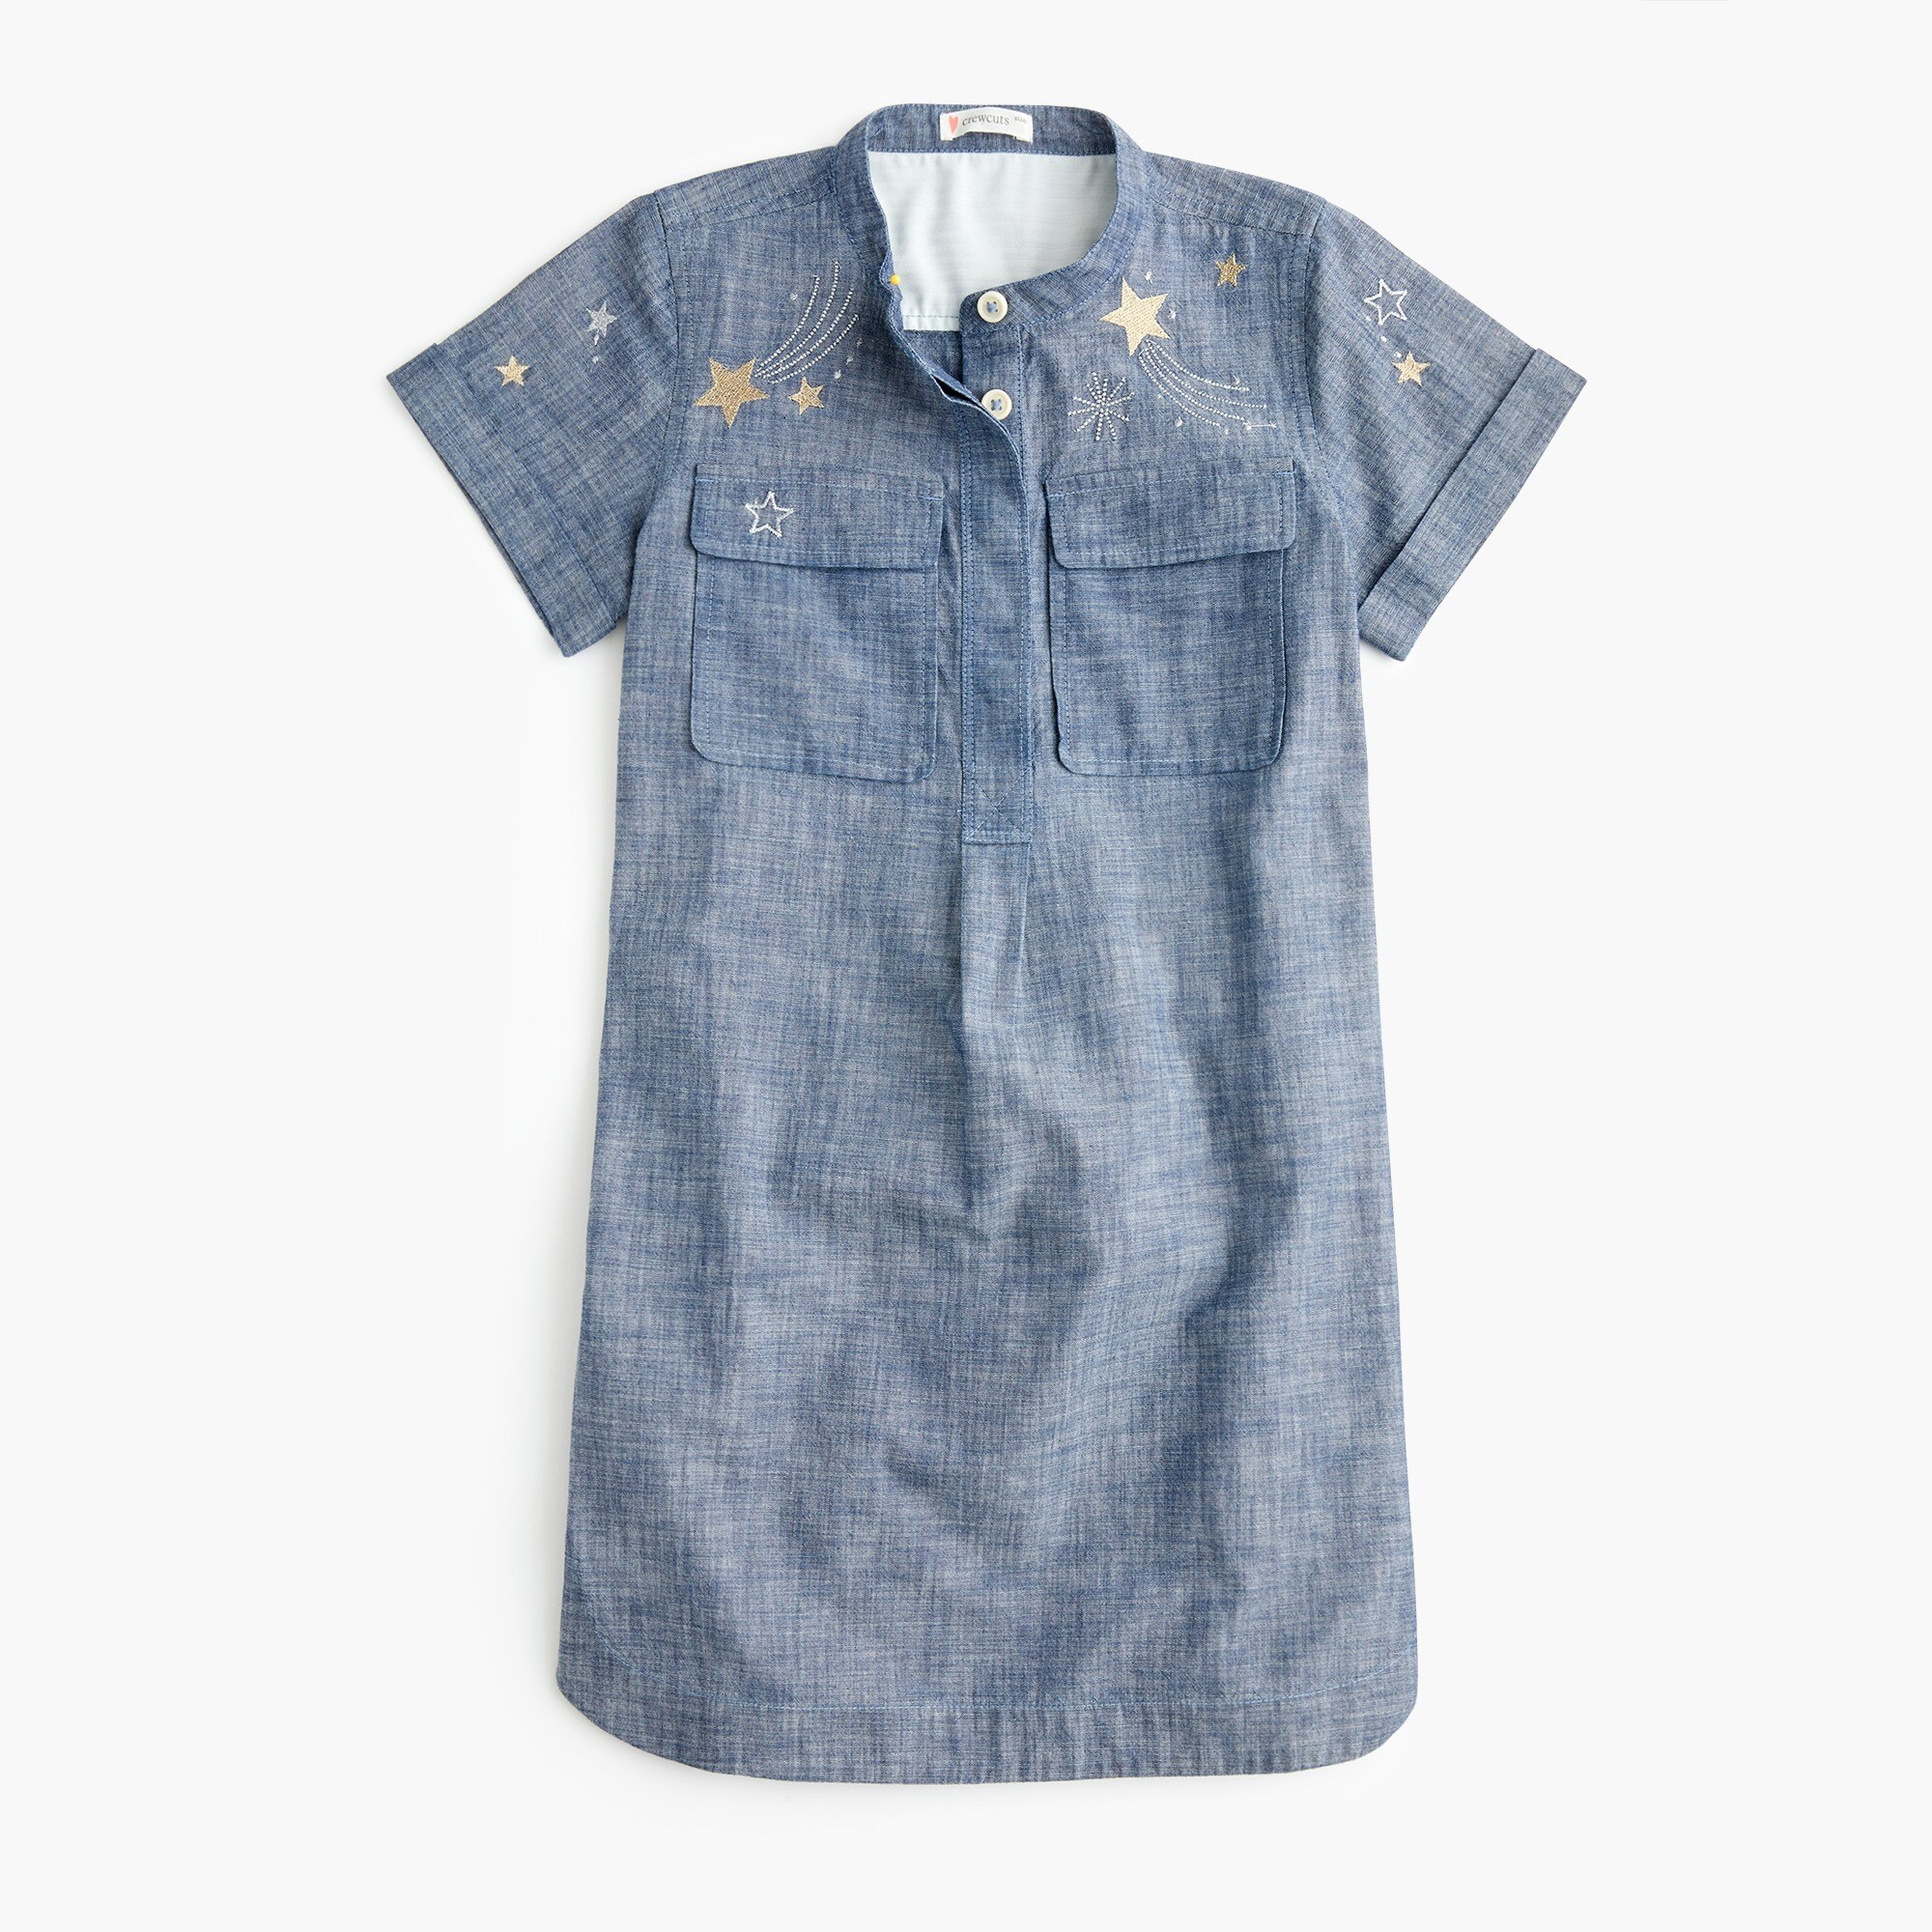 girls' chambray popover dress with shooting stars : girl day